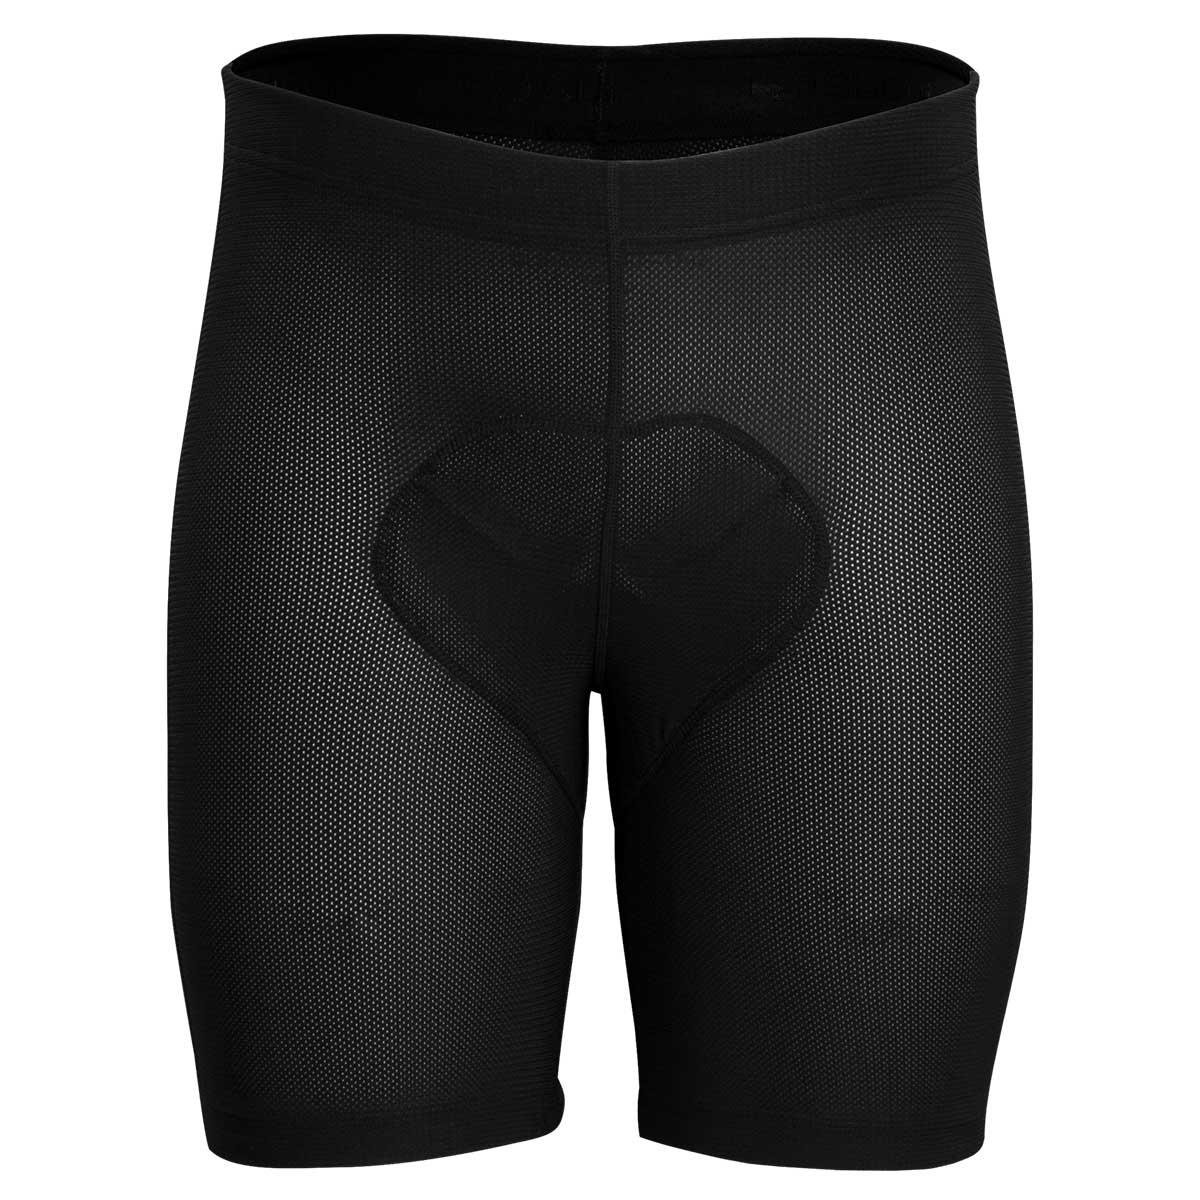 Sugoi men's RC Pro mesh liner shorts in Black